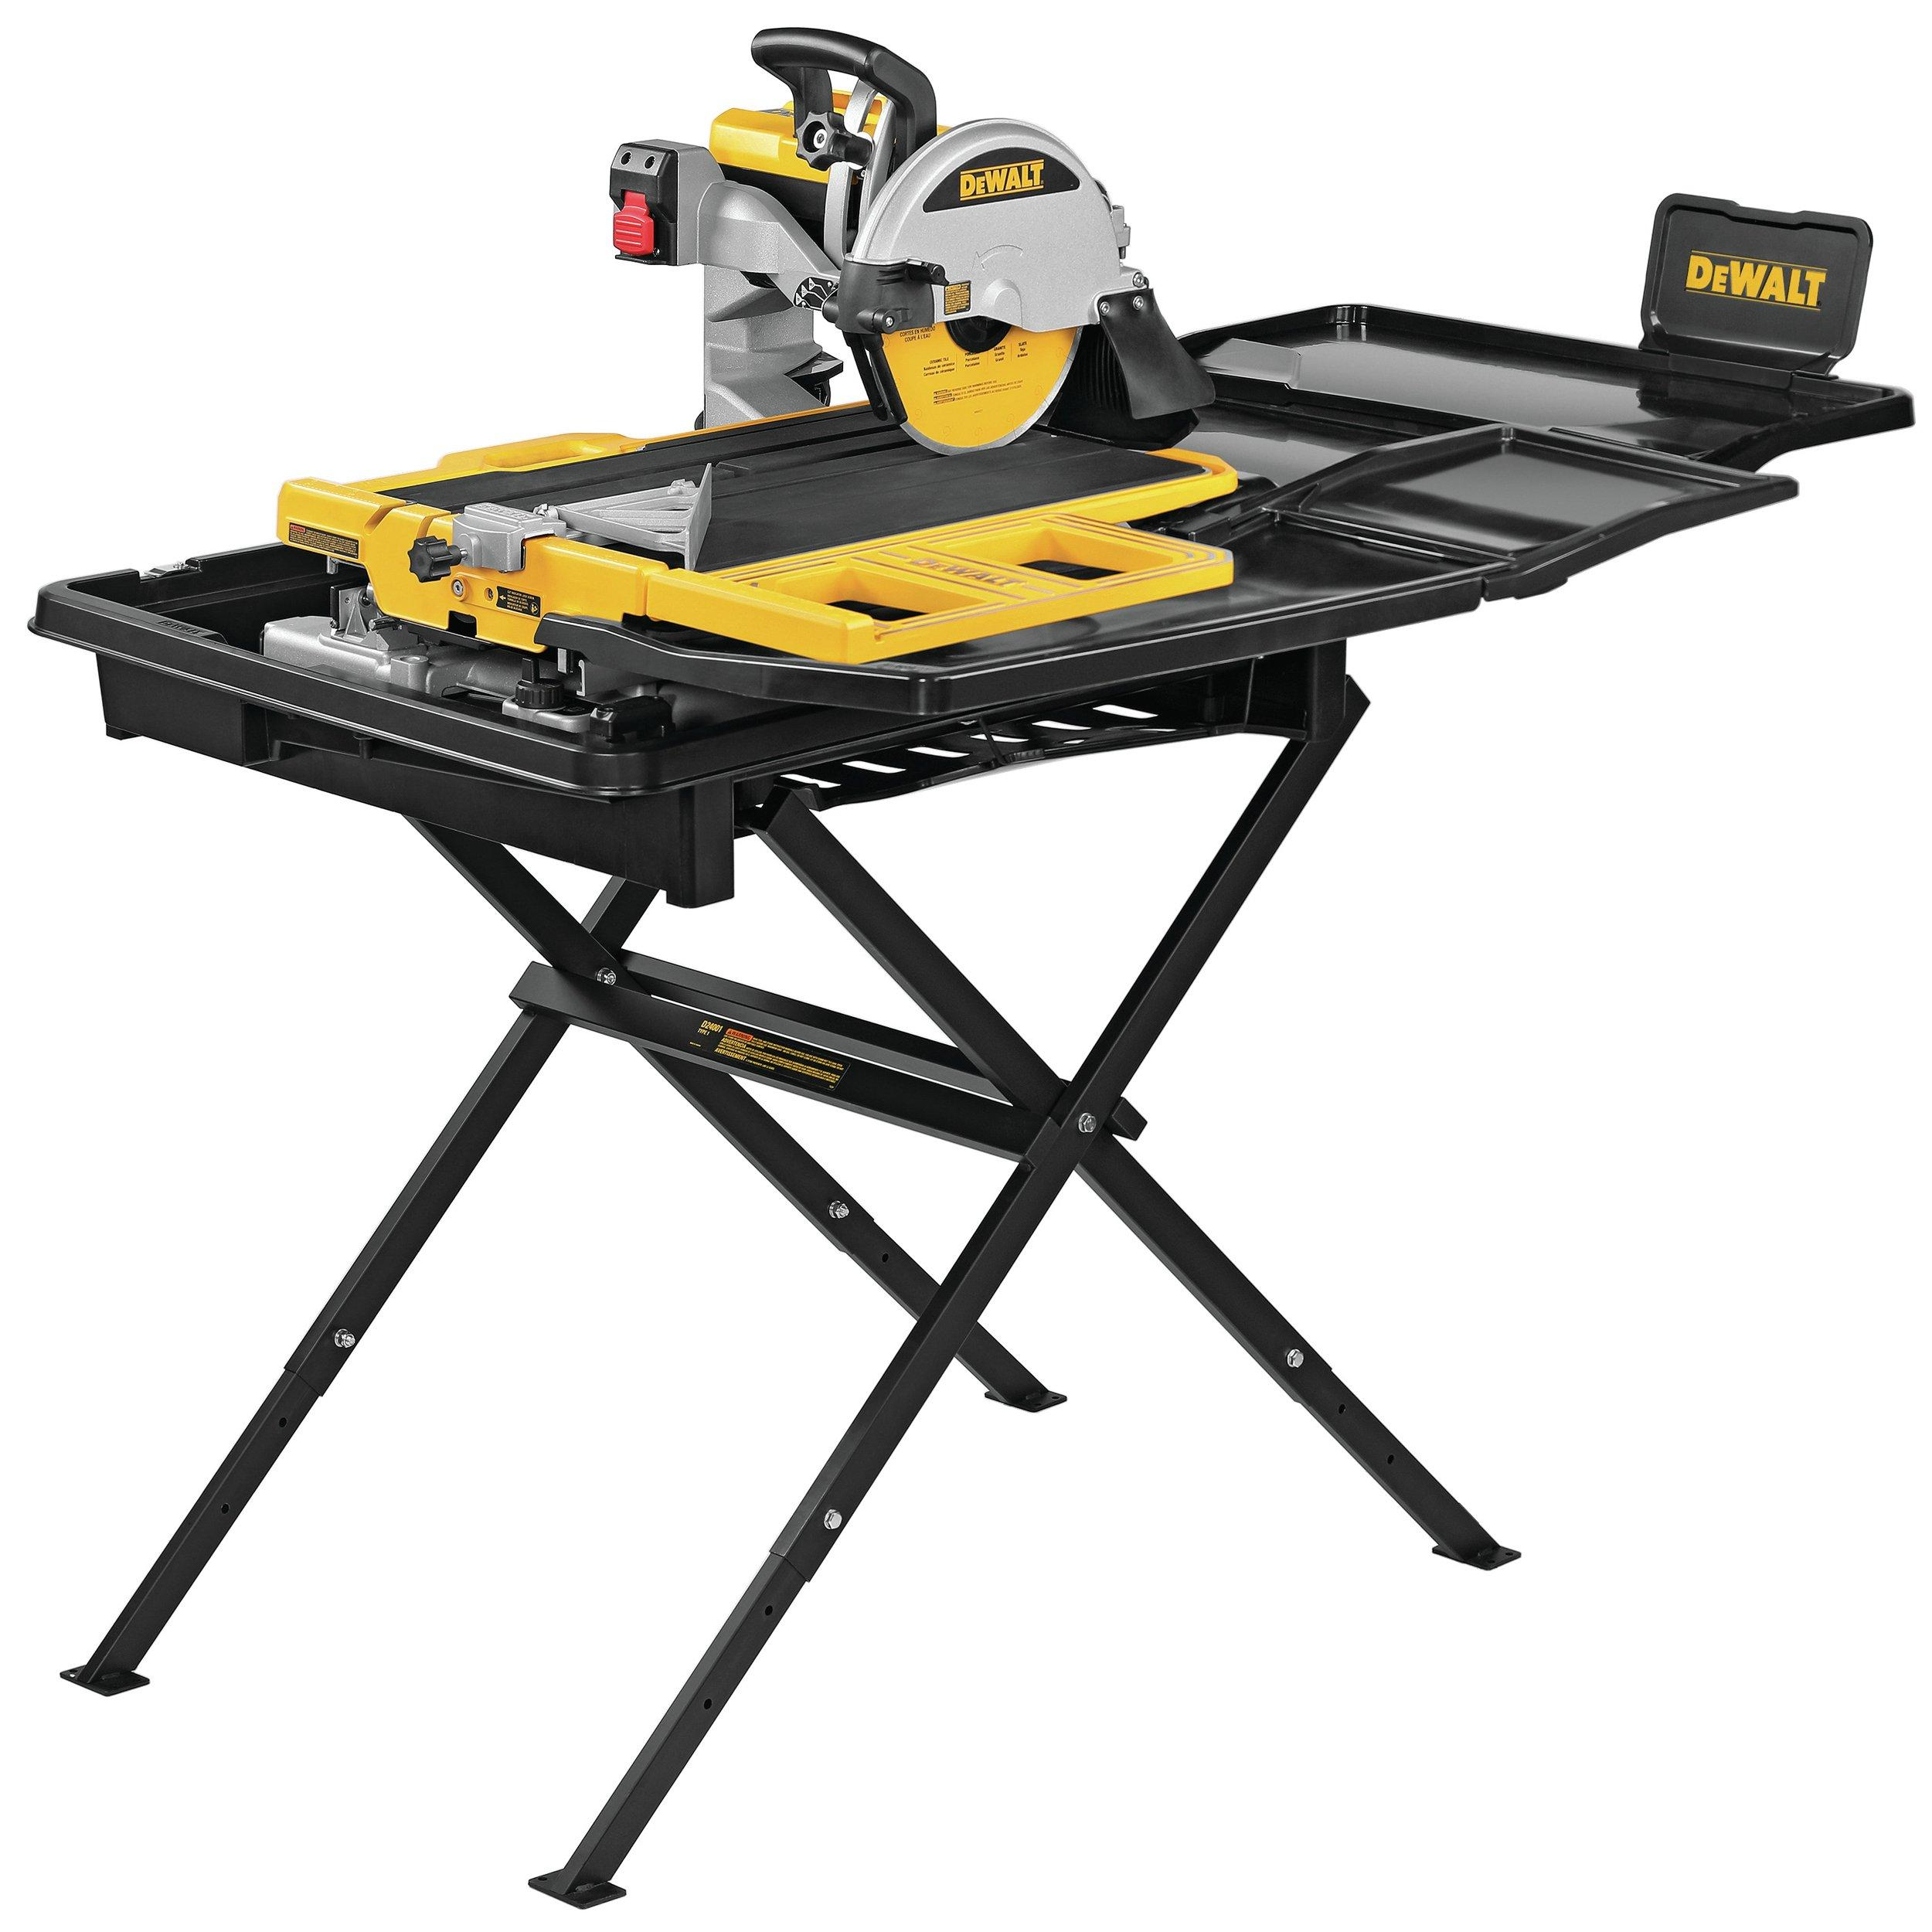 dewalt 10in high capacity wet tile saw with stand